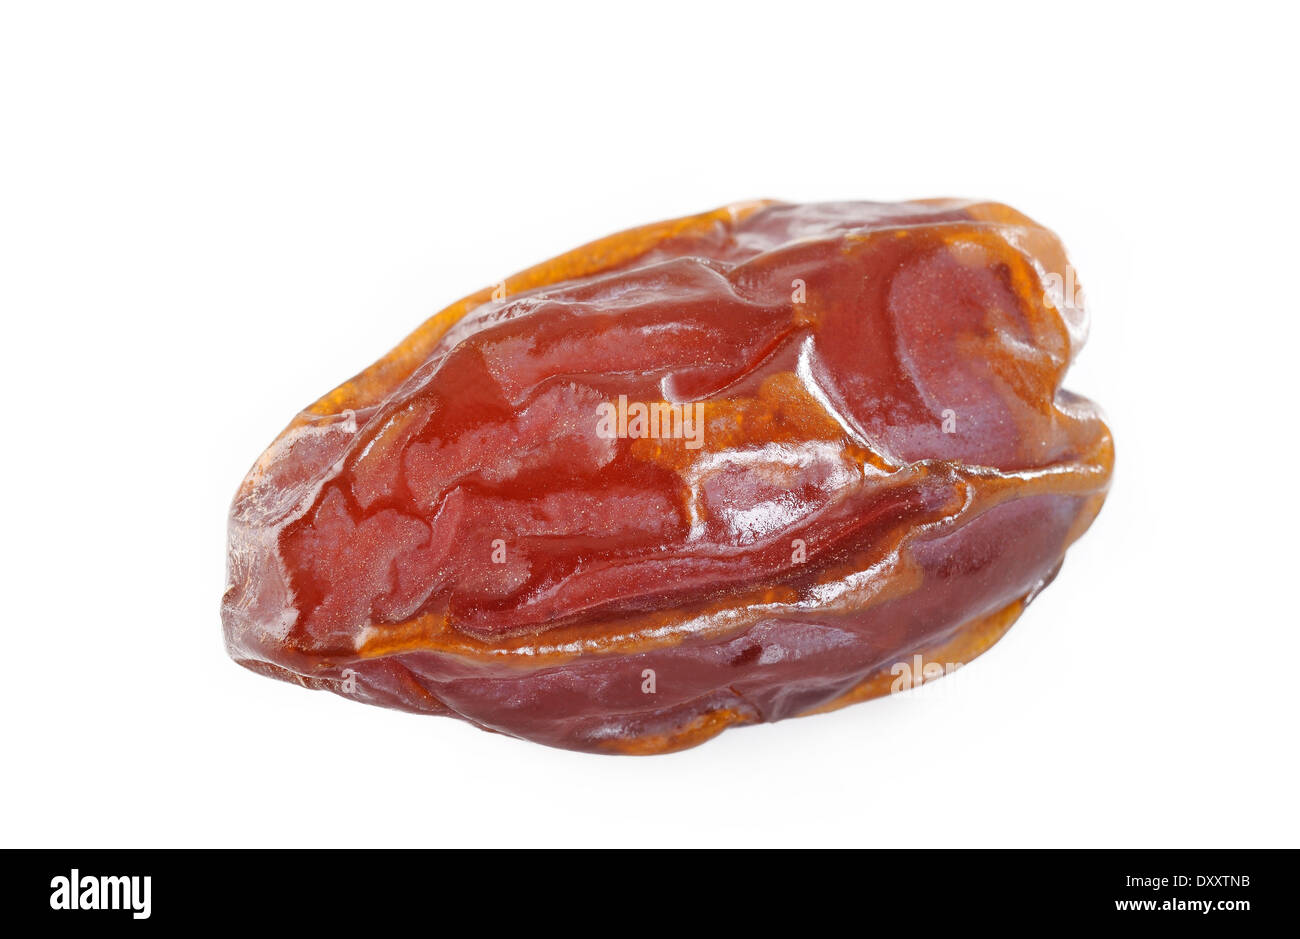 dried date fruit on white background - Stock Image